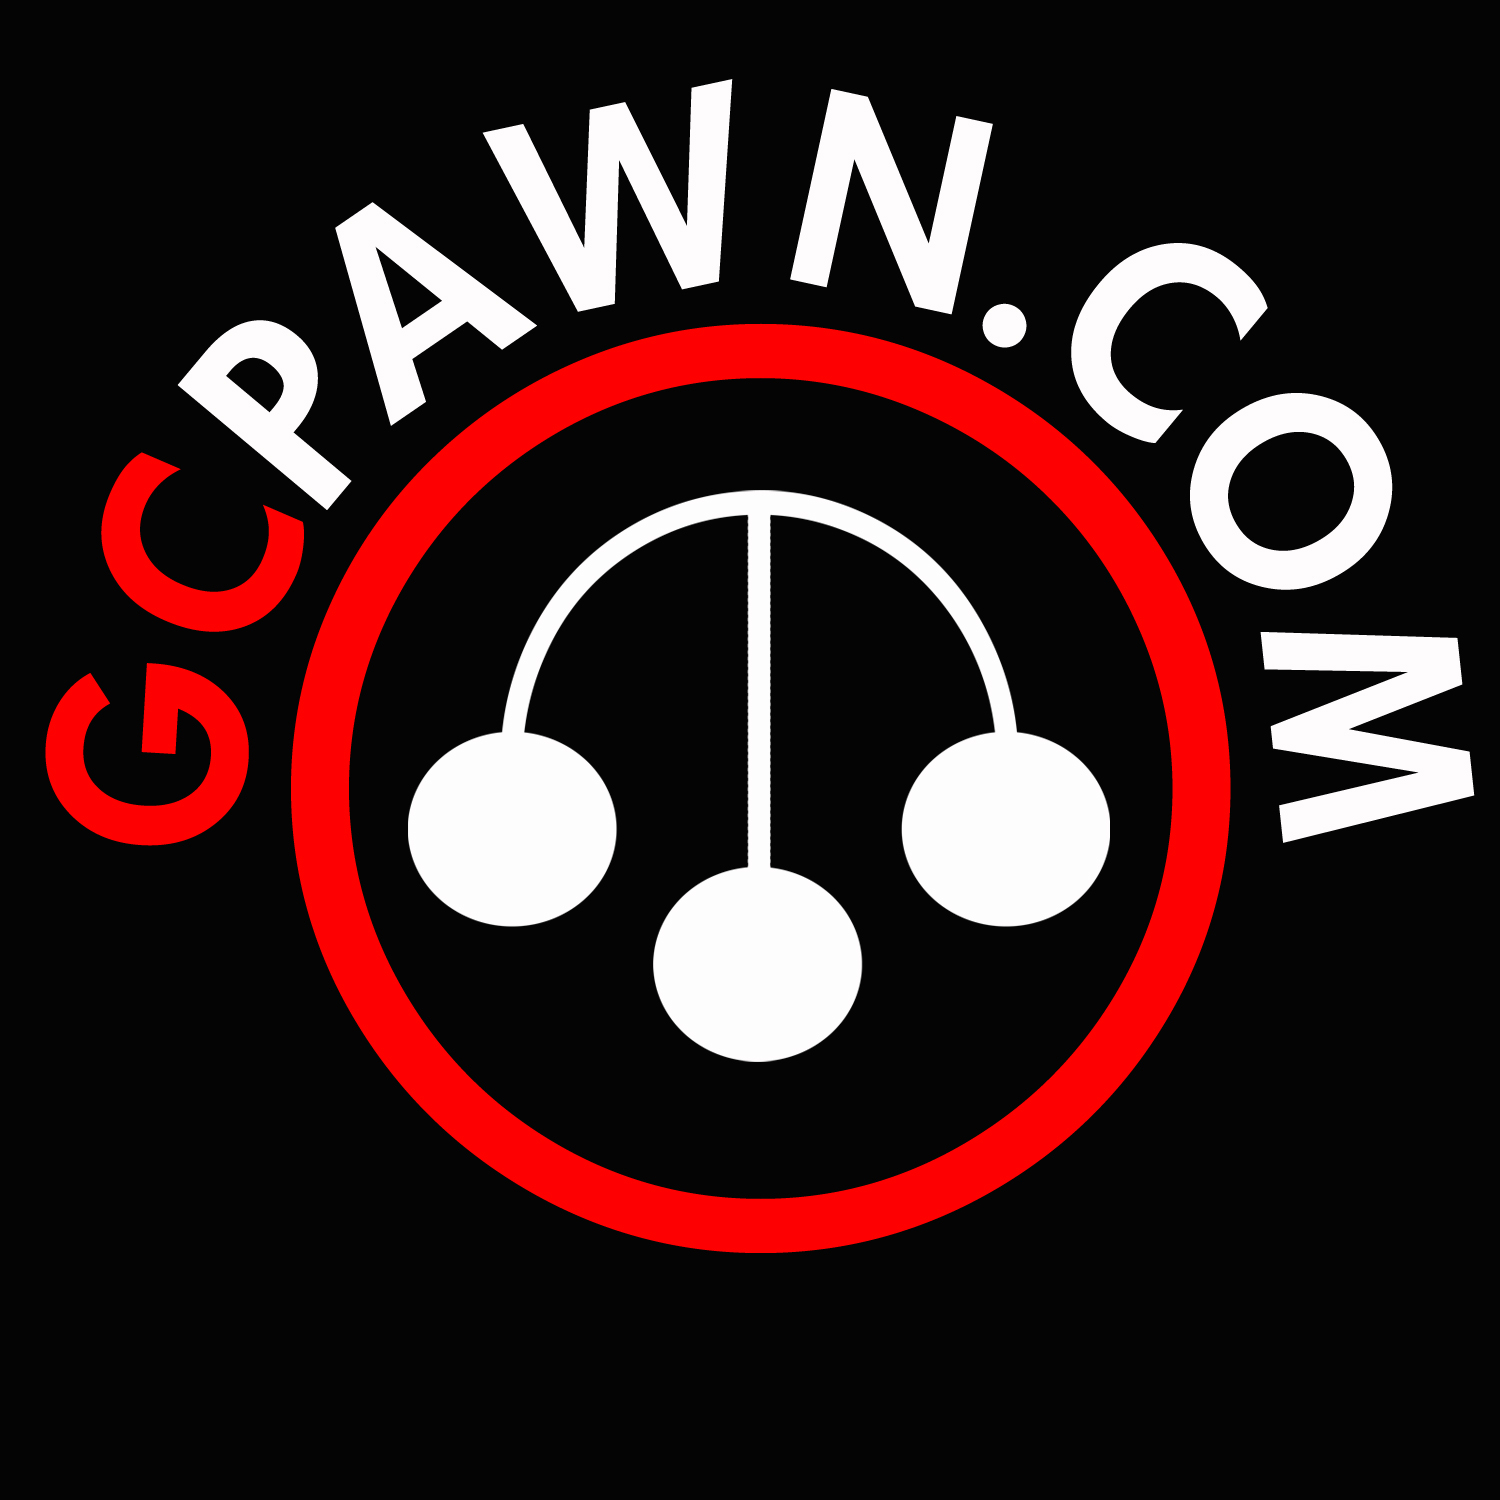 Gc pawn fort lauderdale fl company profile for Capital pawn gold jewelry buyers tampa fl